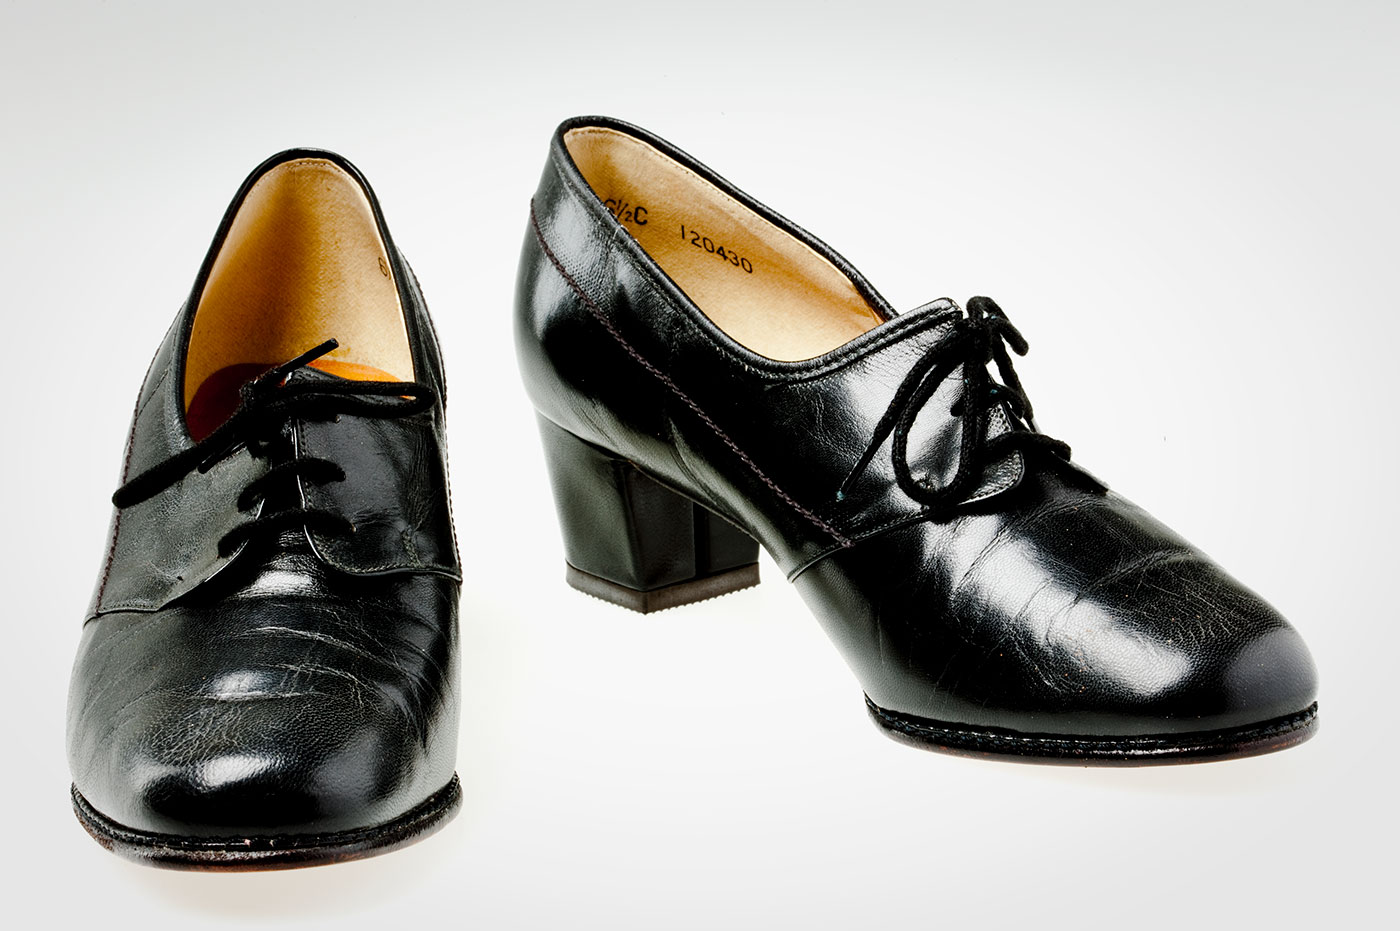 Pair of polished leather shoes. - click to view larger image